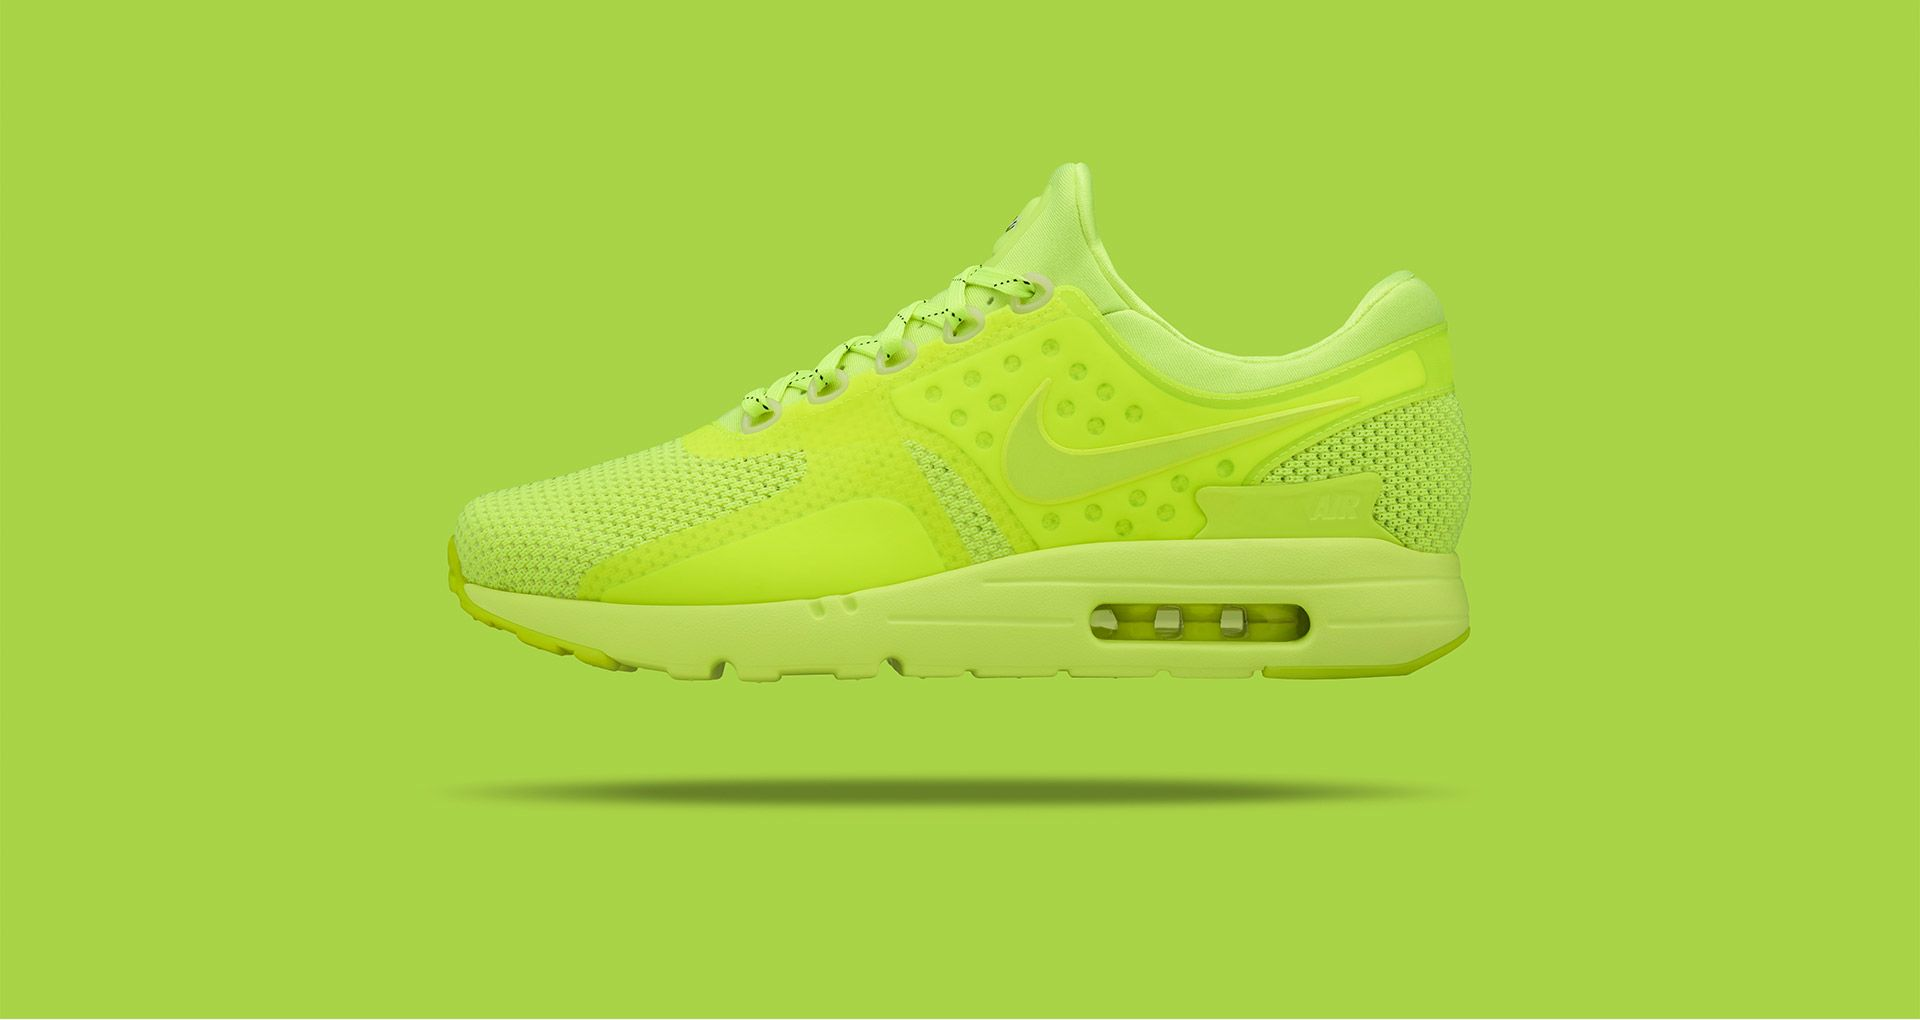 detailed look 5d05b b60d5 Nike Air Max Zero iD Release Date